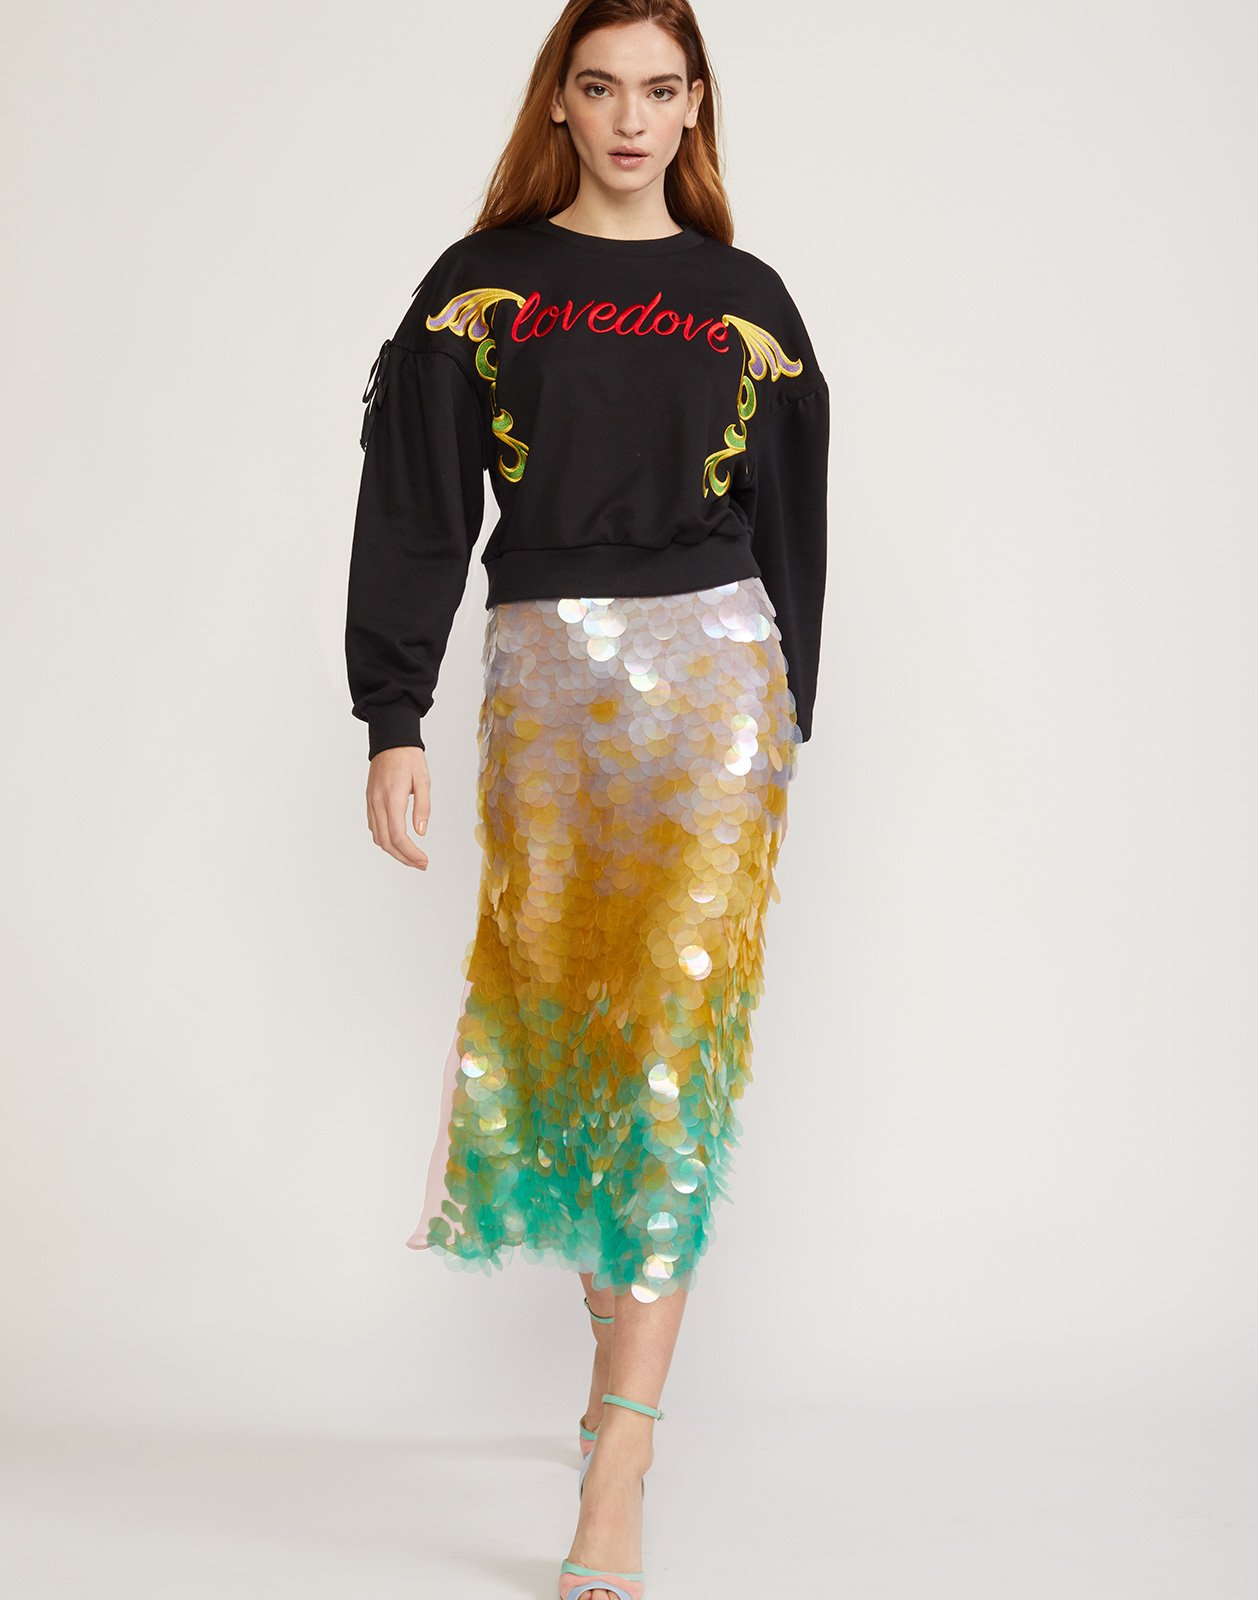 4f37e9a1ec Front view of model walking in iridescent sequin skirt with ombre cascading  pailletes.